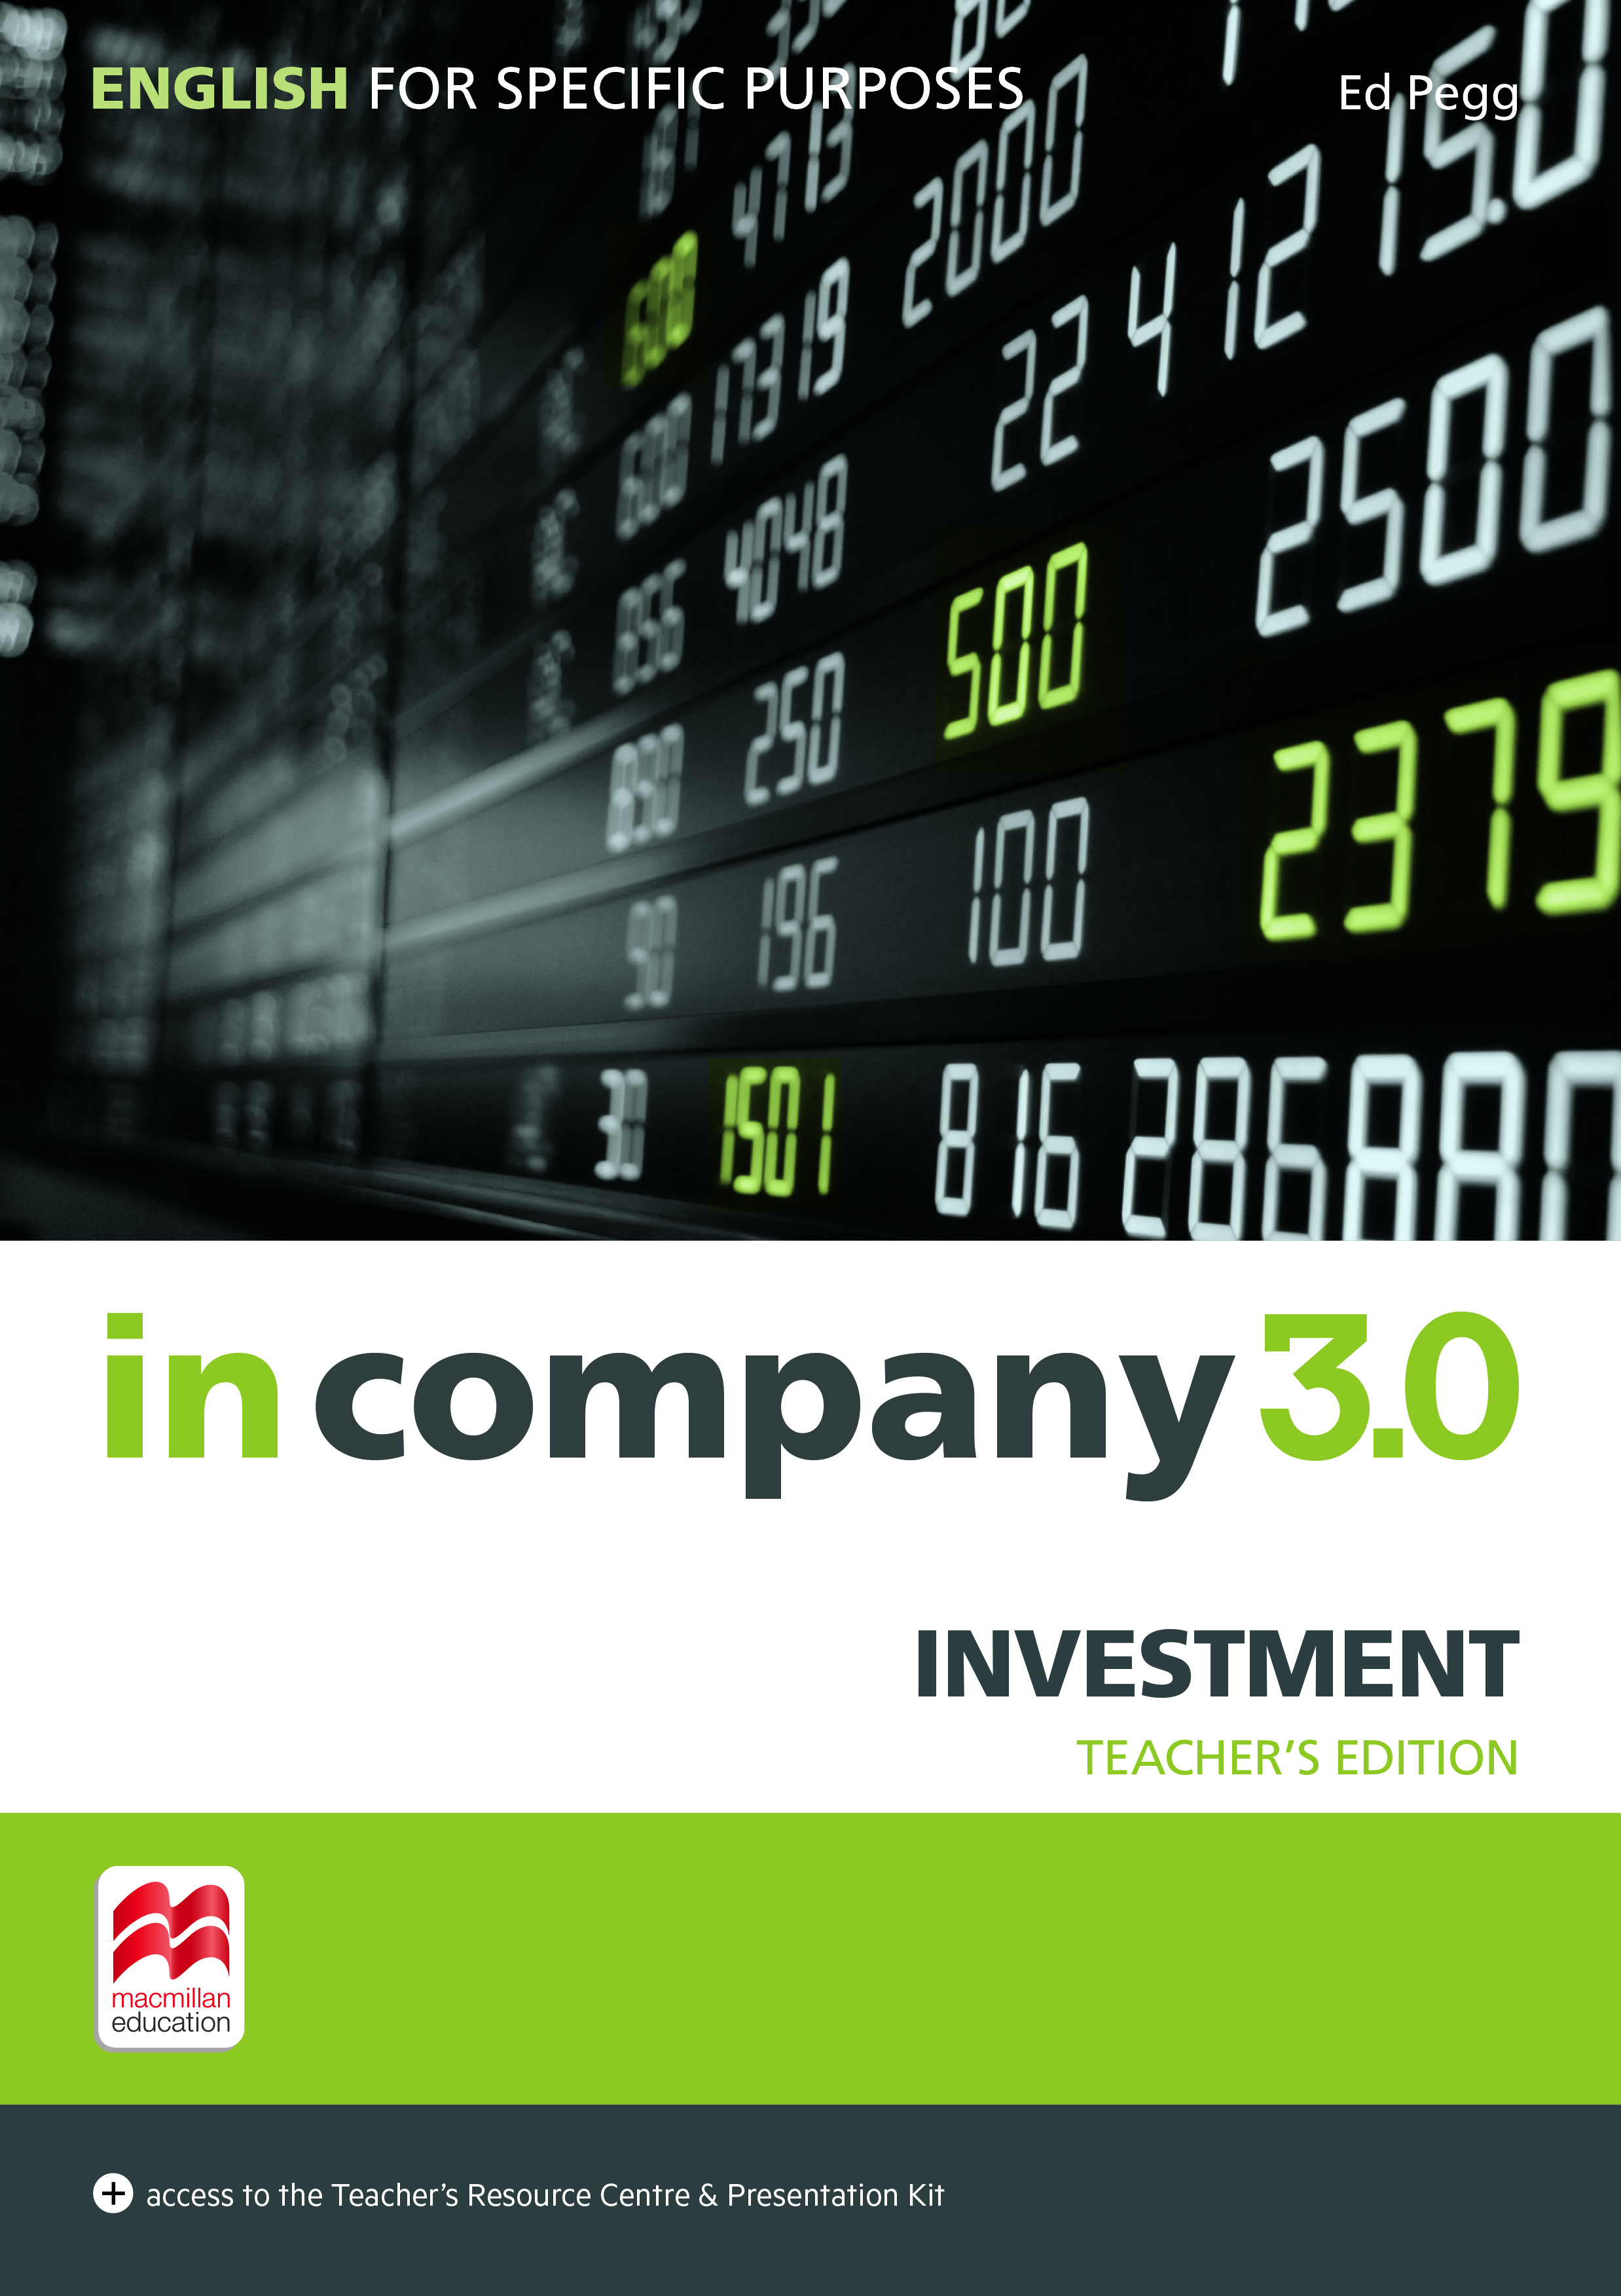 In Company 3.0 ESP Investment Teacher